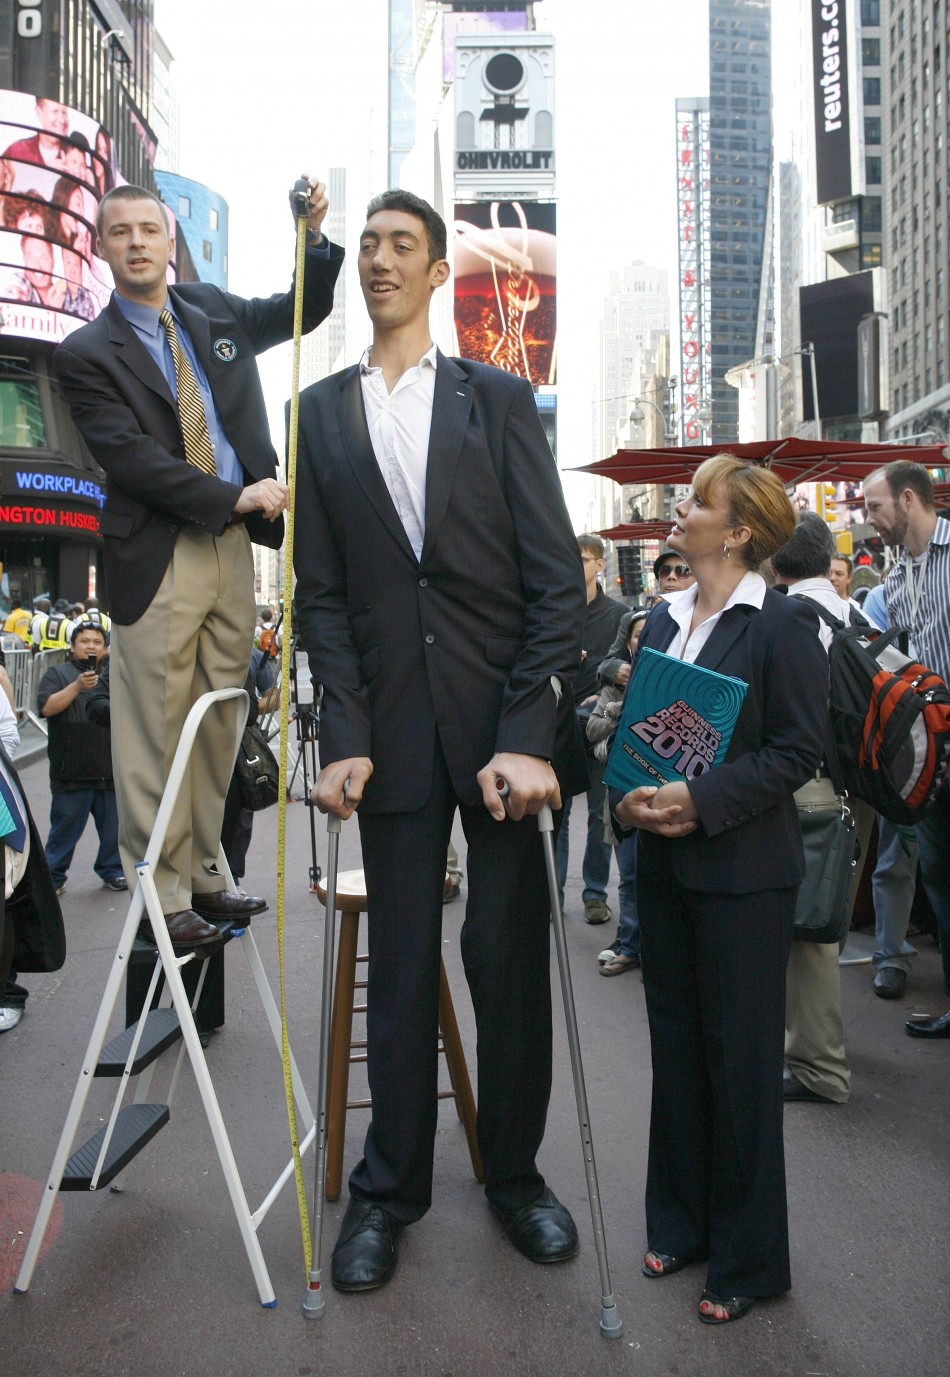 sultan-kosen-worlds-tallest-man height measurement